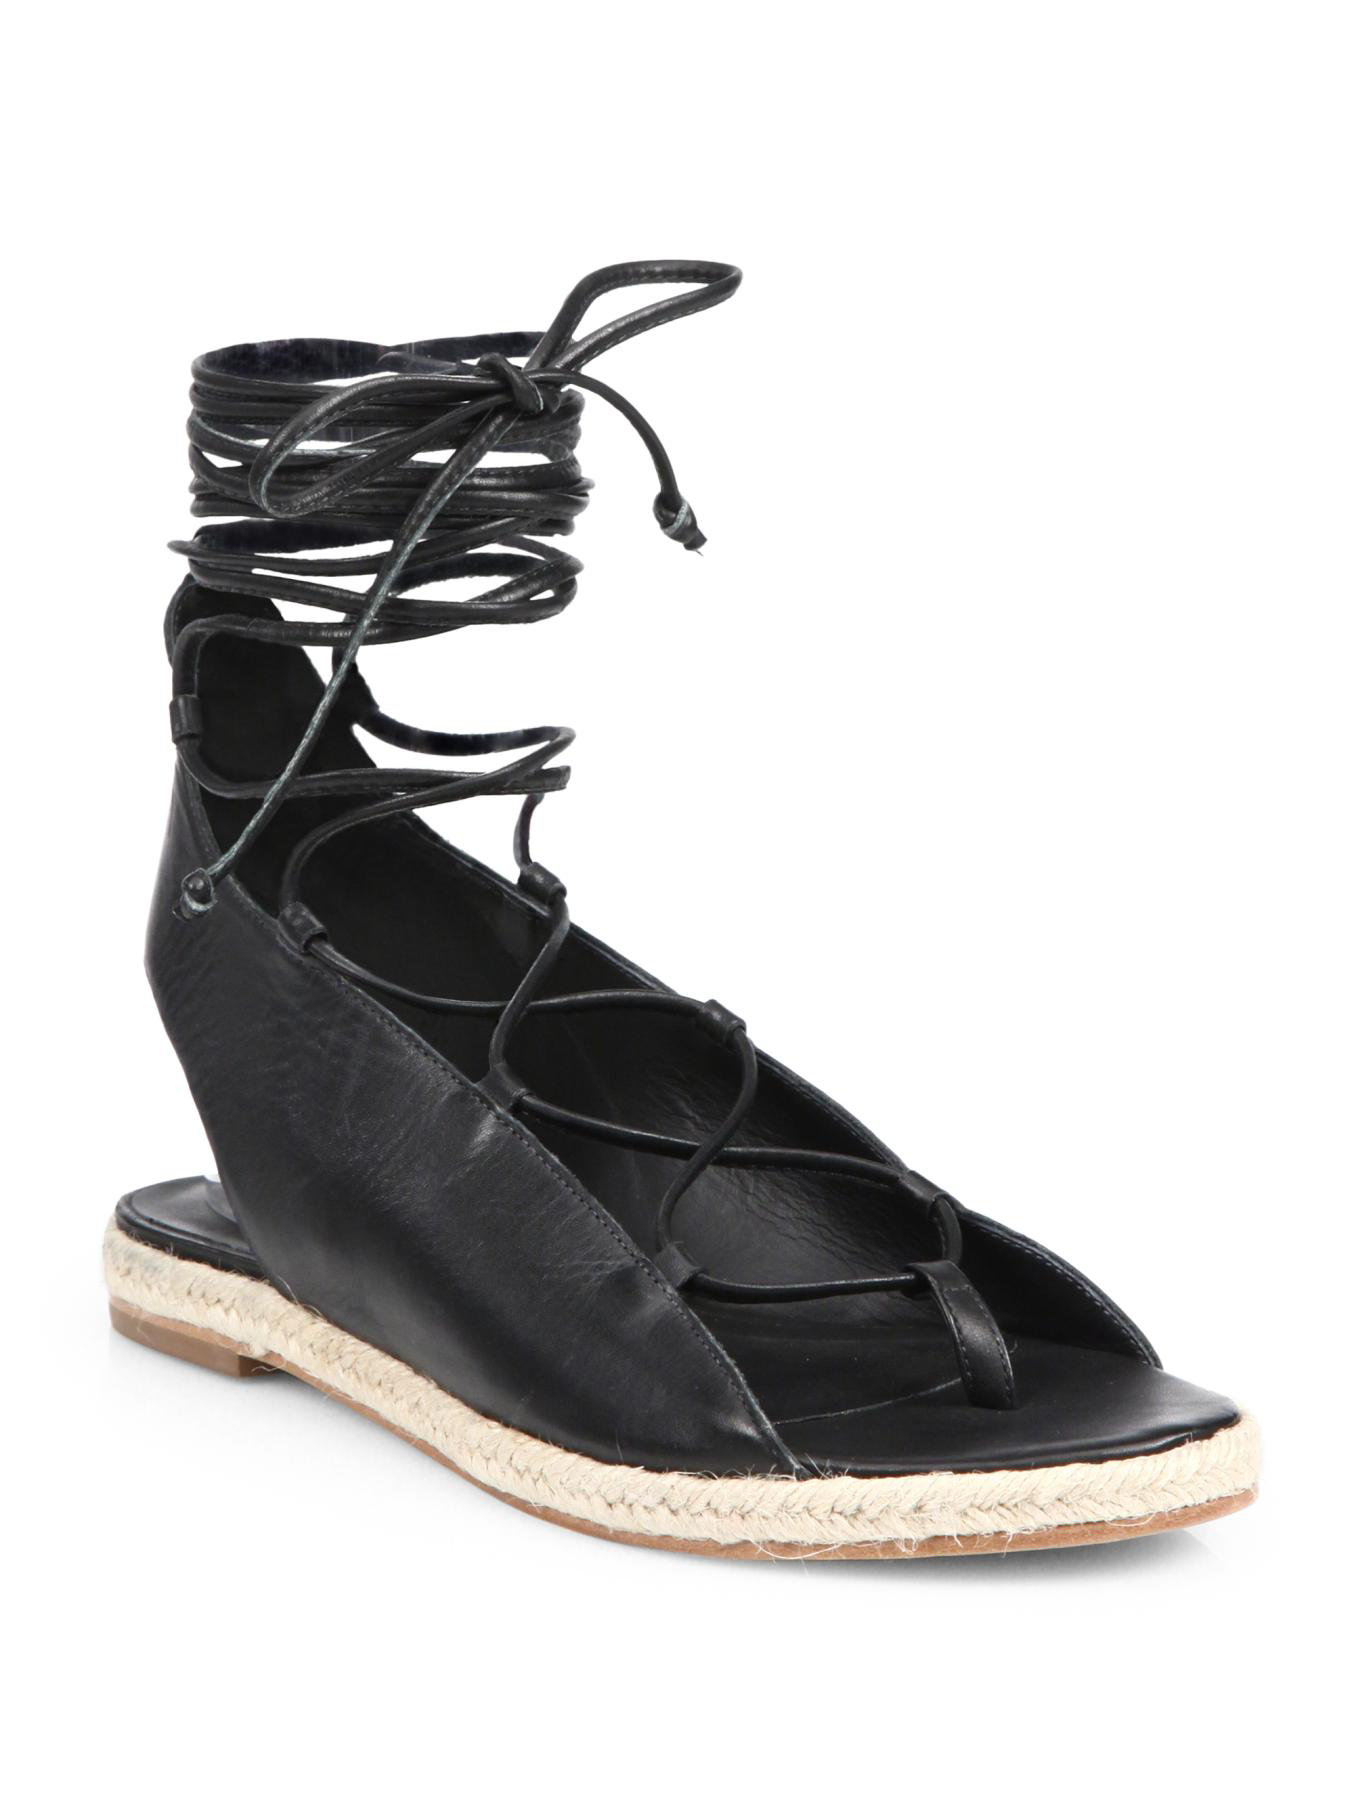 Lyst Tibi Camilo Leather Lace Up Espadrille Sandals In Black